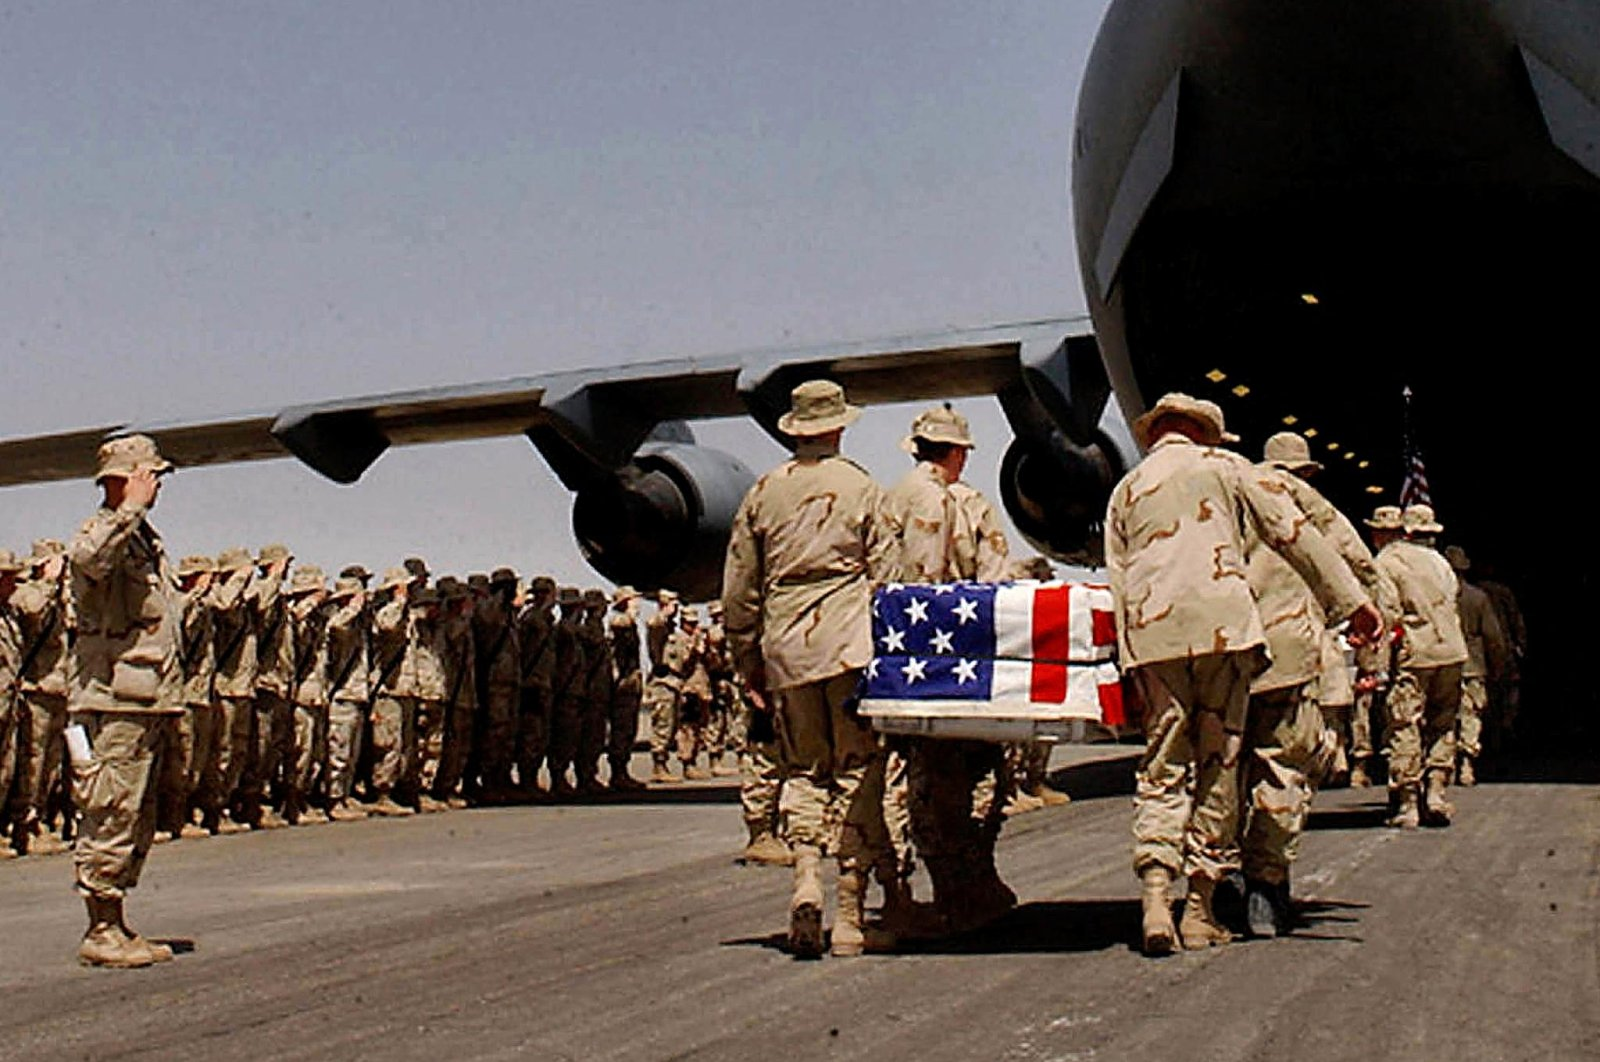 U.S. soldiers carry the coffins of their colleagues draped in national flags to a C-17 aircraft during a memorial ceremony held at Kandahar army base, Afghanistan, March 30, 2020. (AFP File Photo)